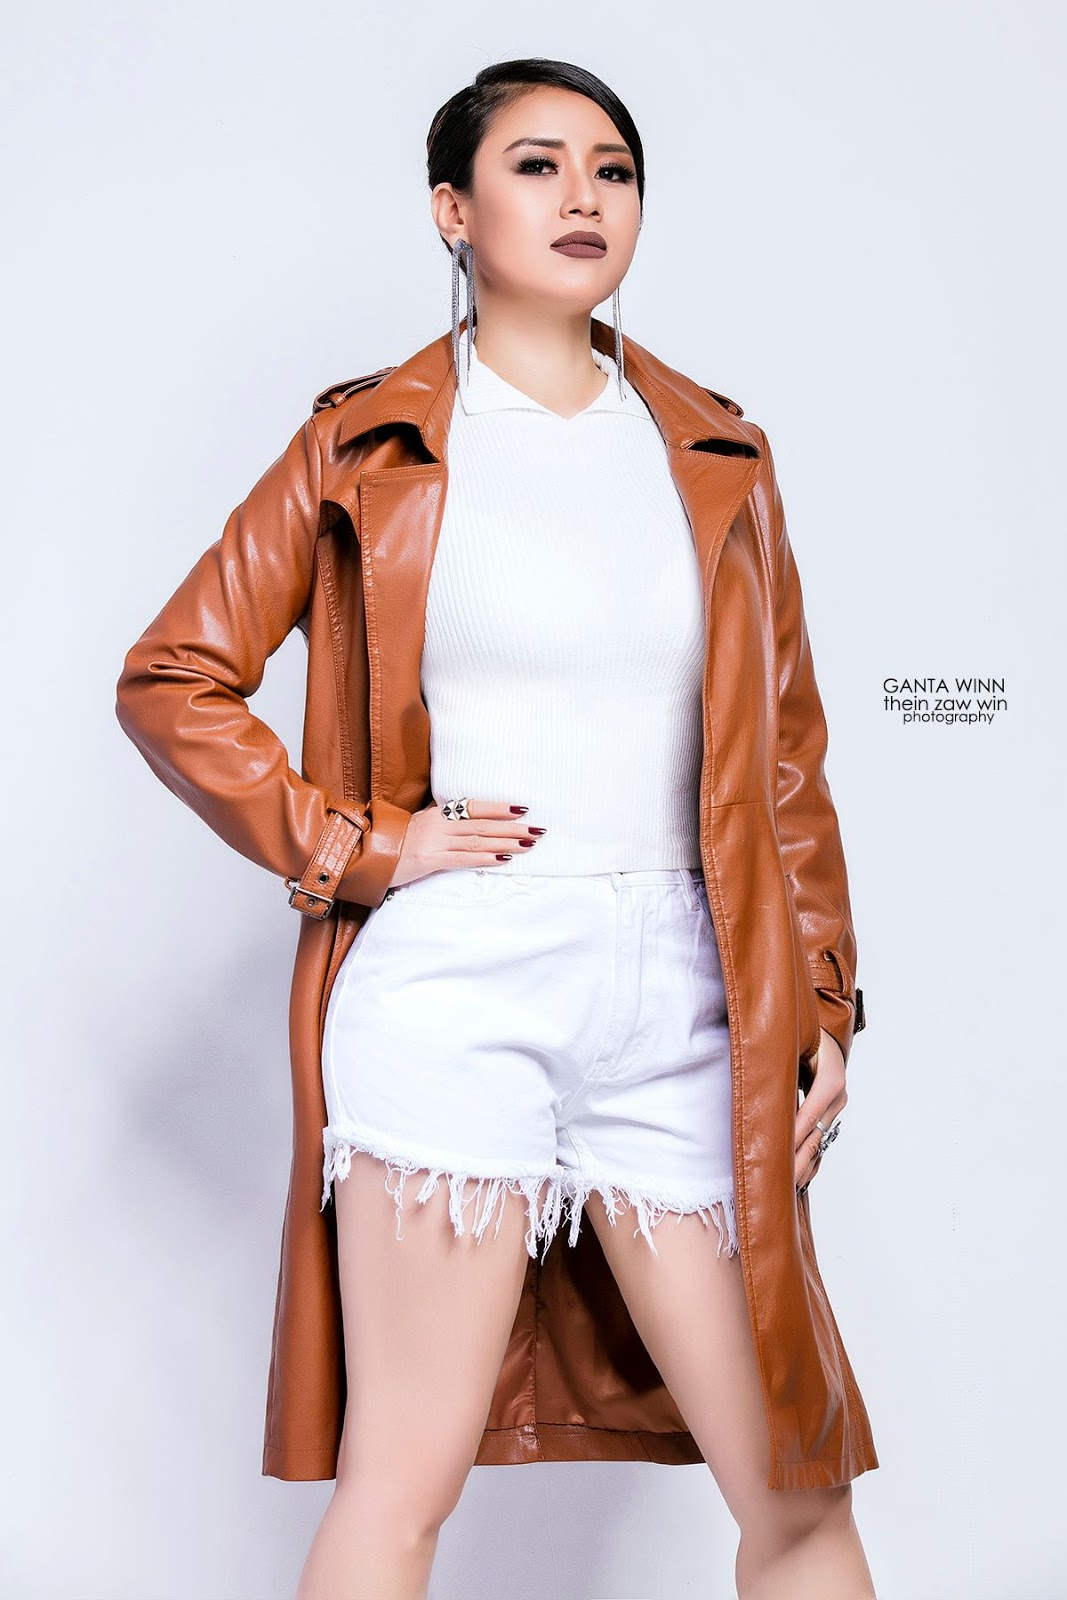 Myanmar Model Gandawin New Studio Photoshoot